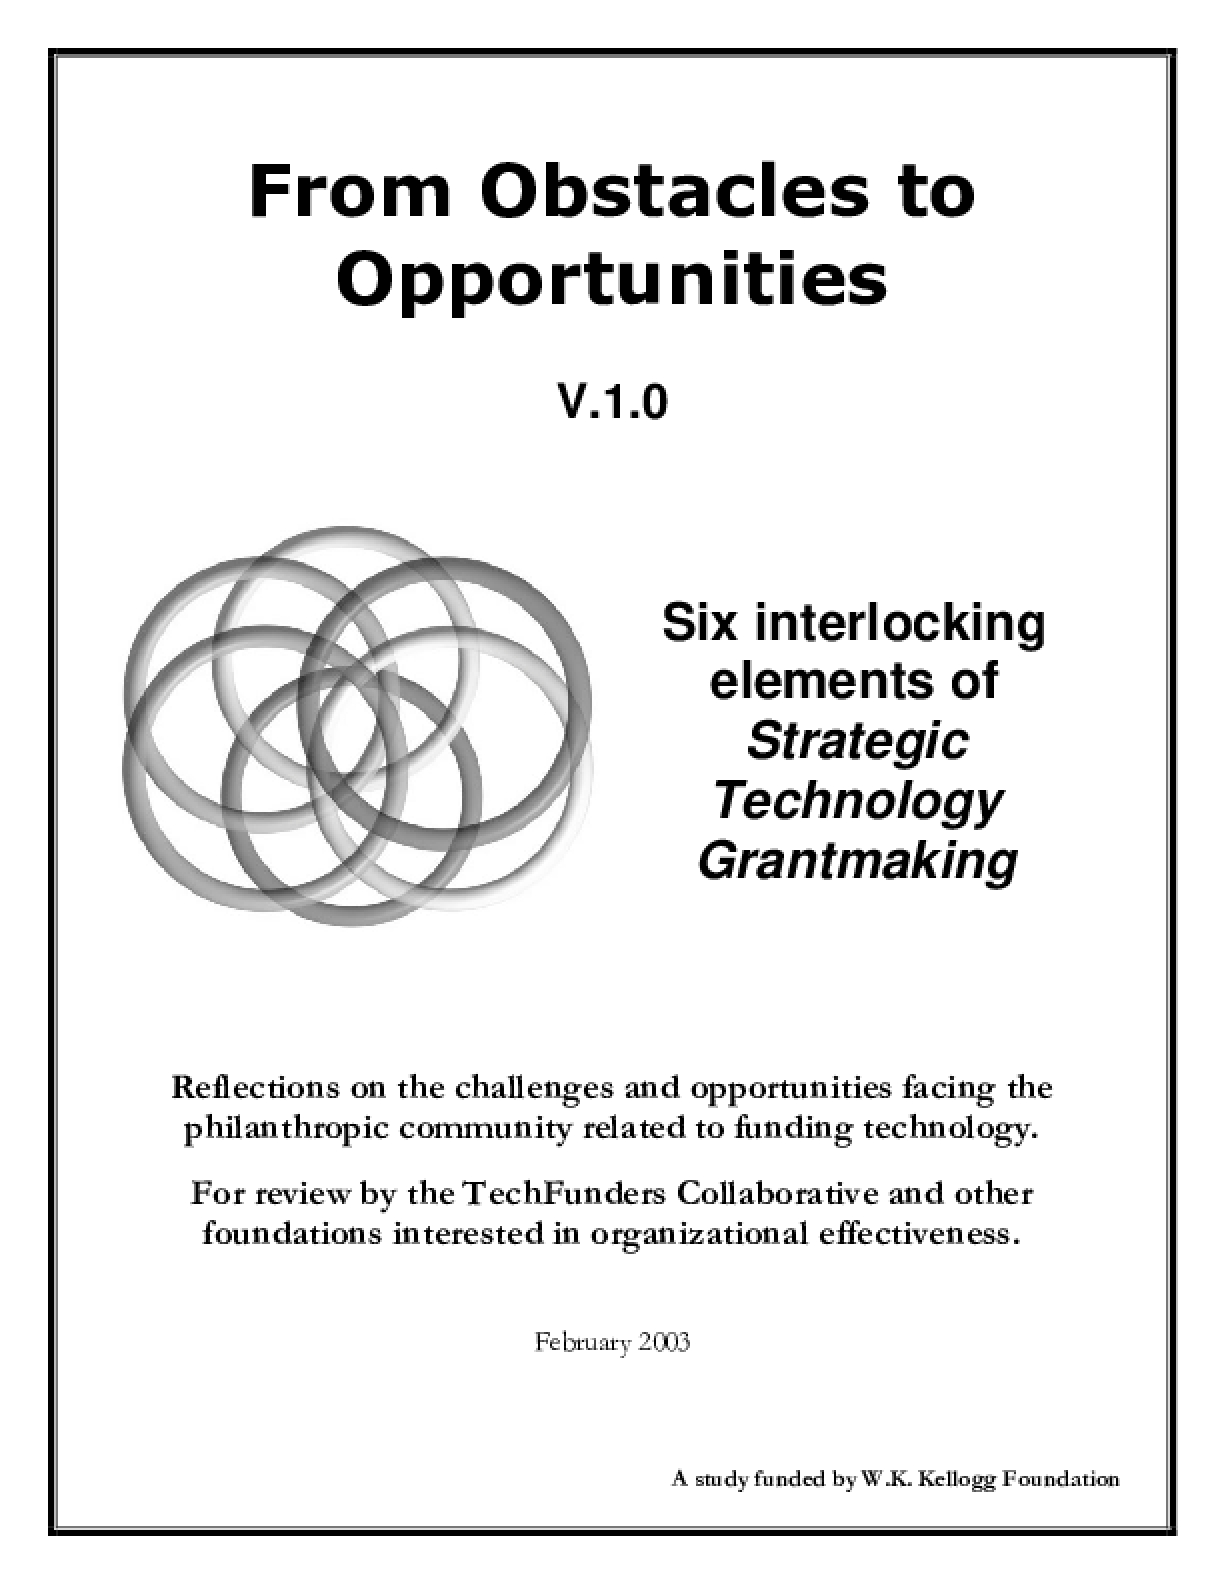 From Obstacles to Opportunities: Six Interlocking Elements of Strategic Technology Grantmaking